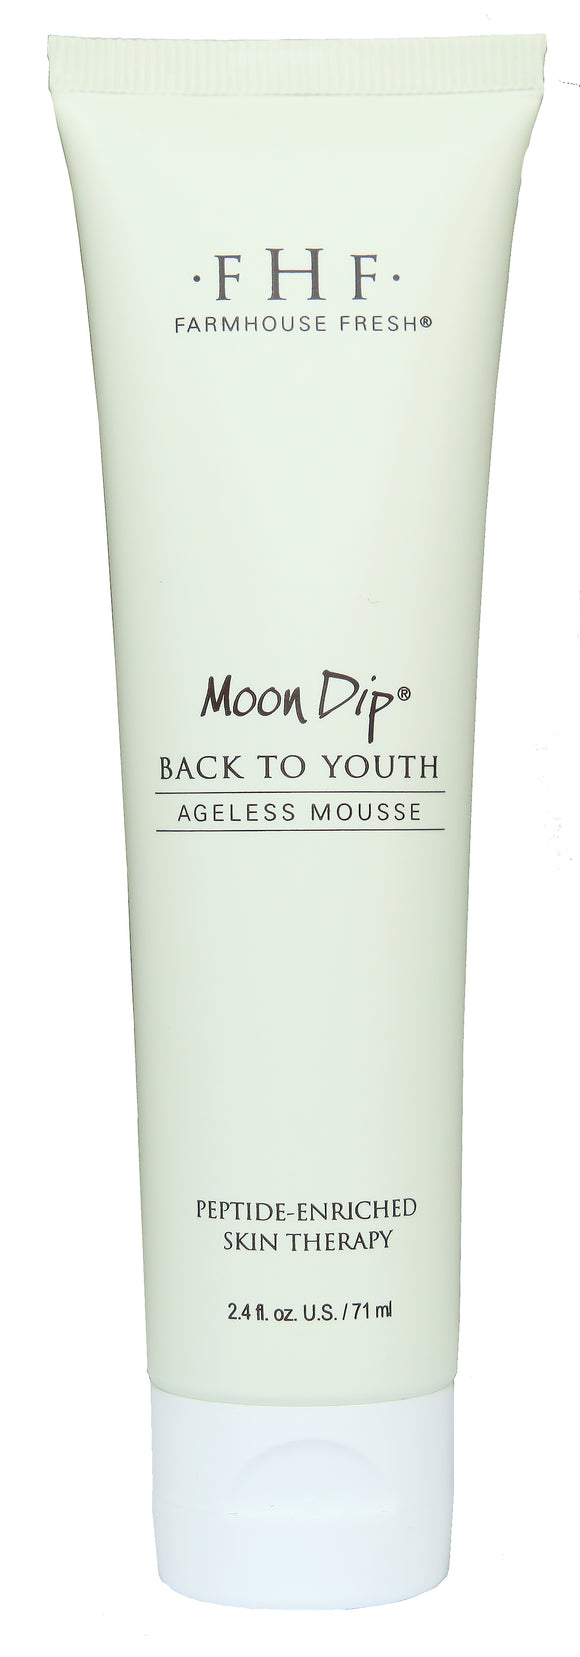 FarmHouse Fresh Moon Dip Back to Youth Ageless Mousse Hand Cream